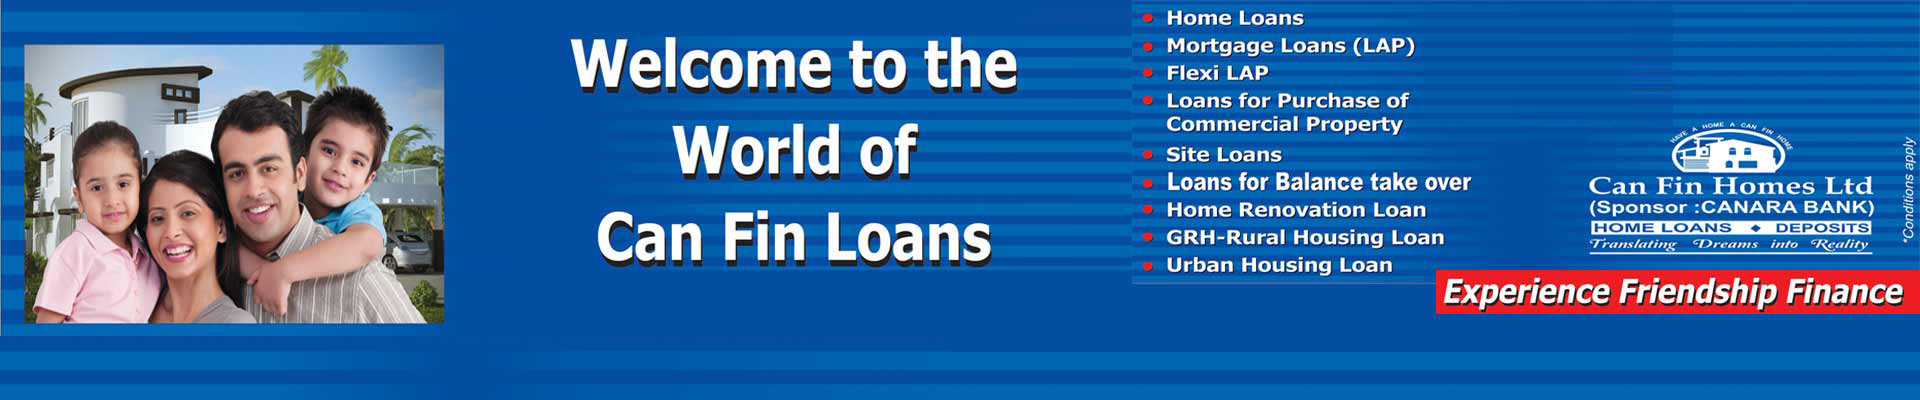 Home Loans India